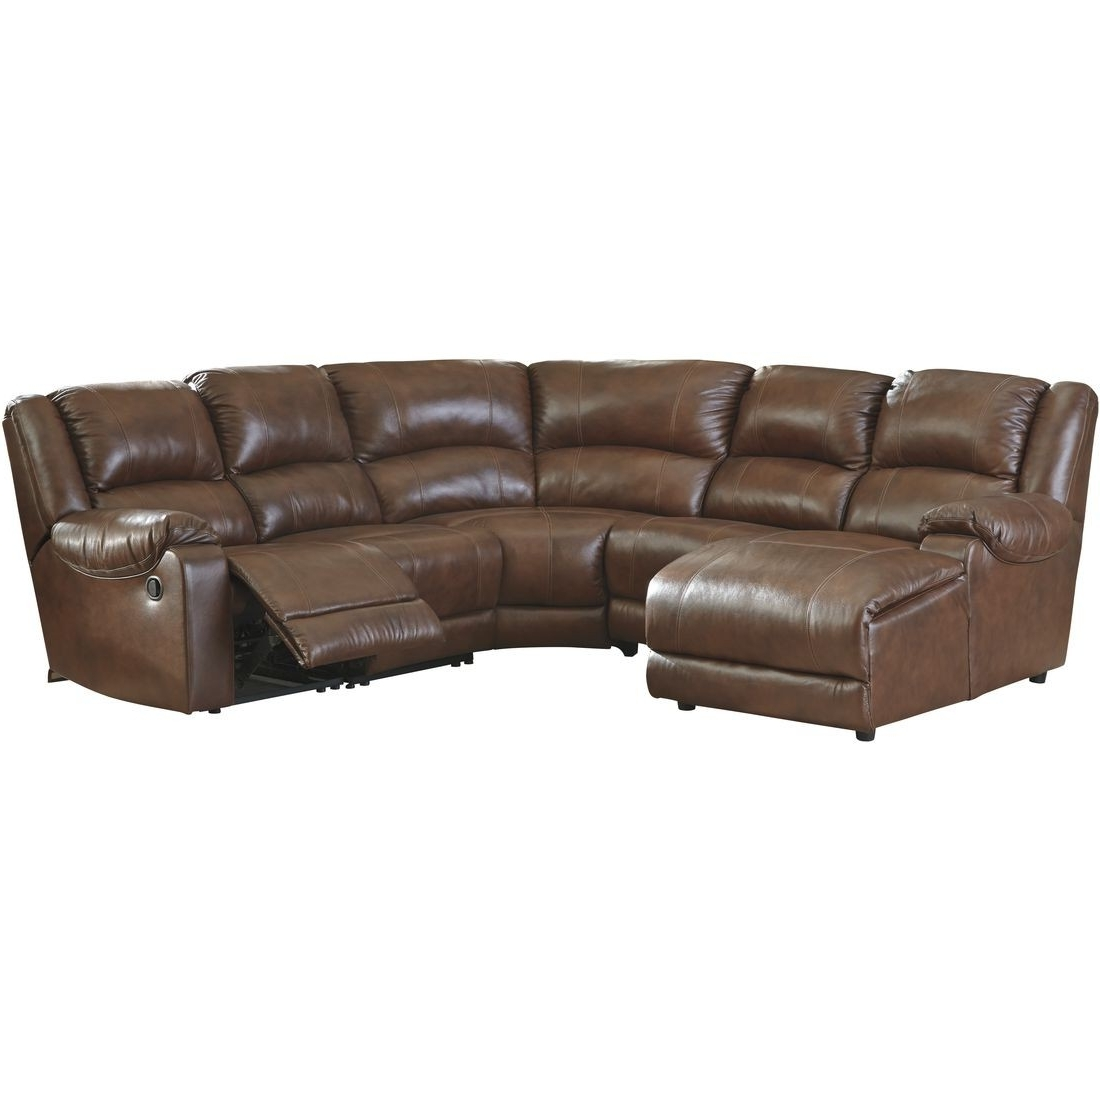 Ashley Furniture Billwedge Sectional Sofa In Canyon (View 4 of 15)